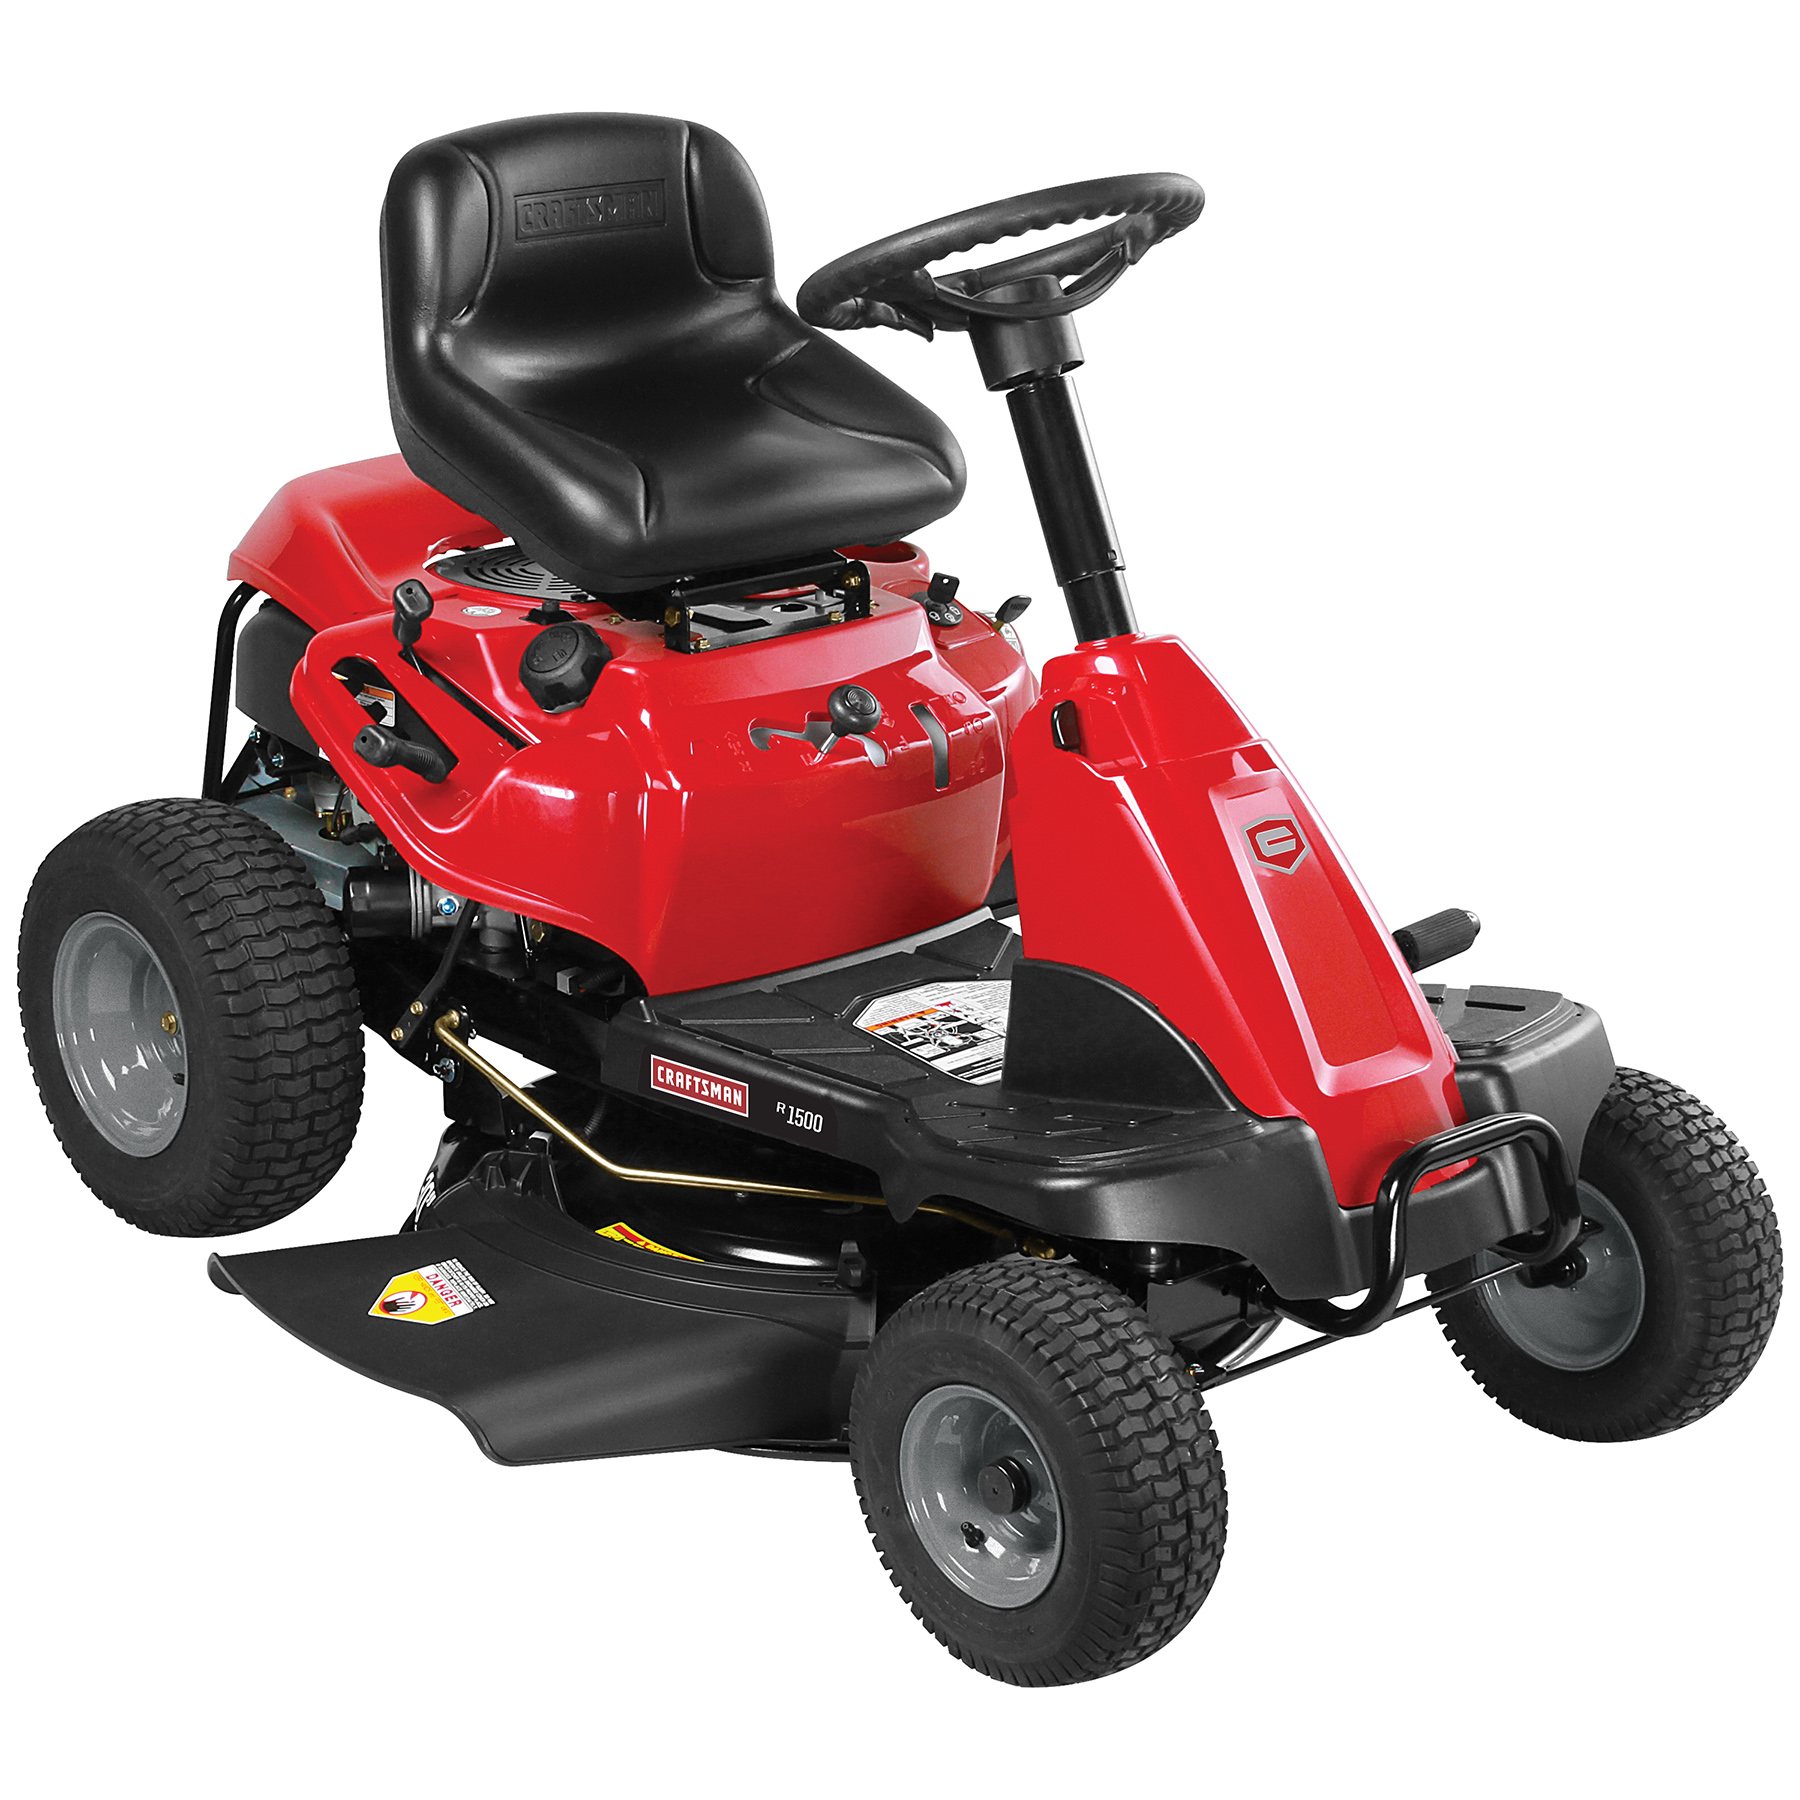 small resolution of wiring diagram for craftsman riding mower old craftsman riding lawn mower 1 2 hp wiring diagram